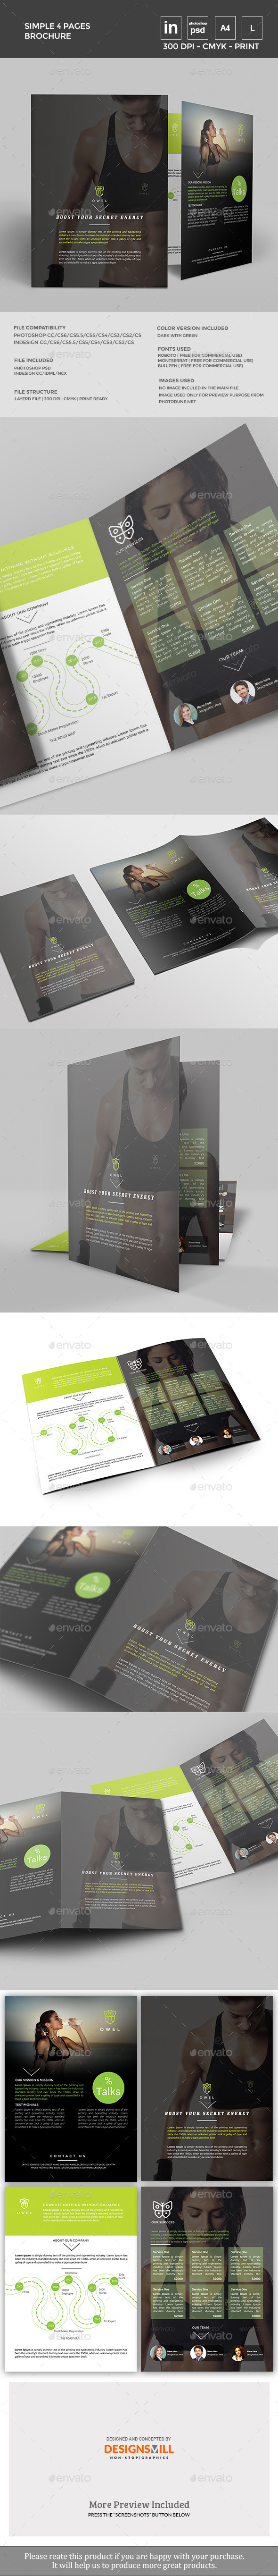 GraphicRiver 4 Pages Bifold Brochure 11467455